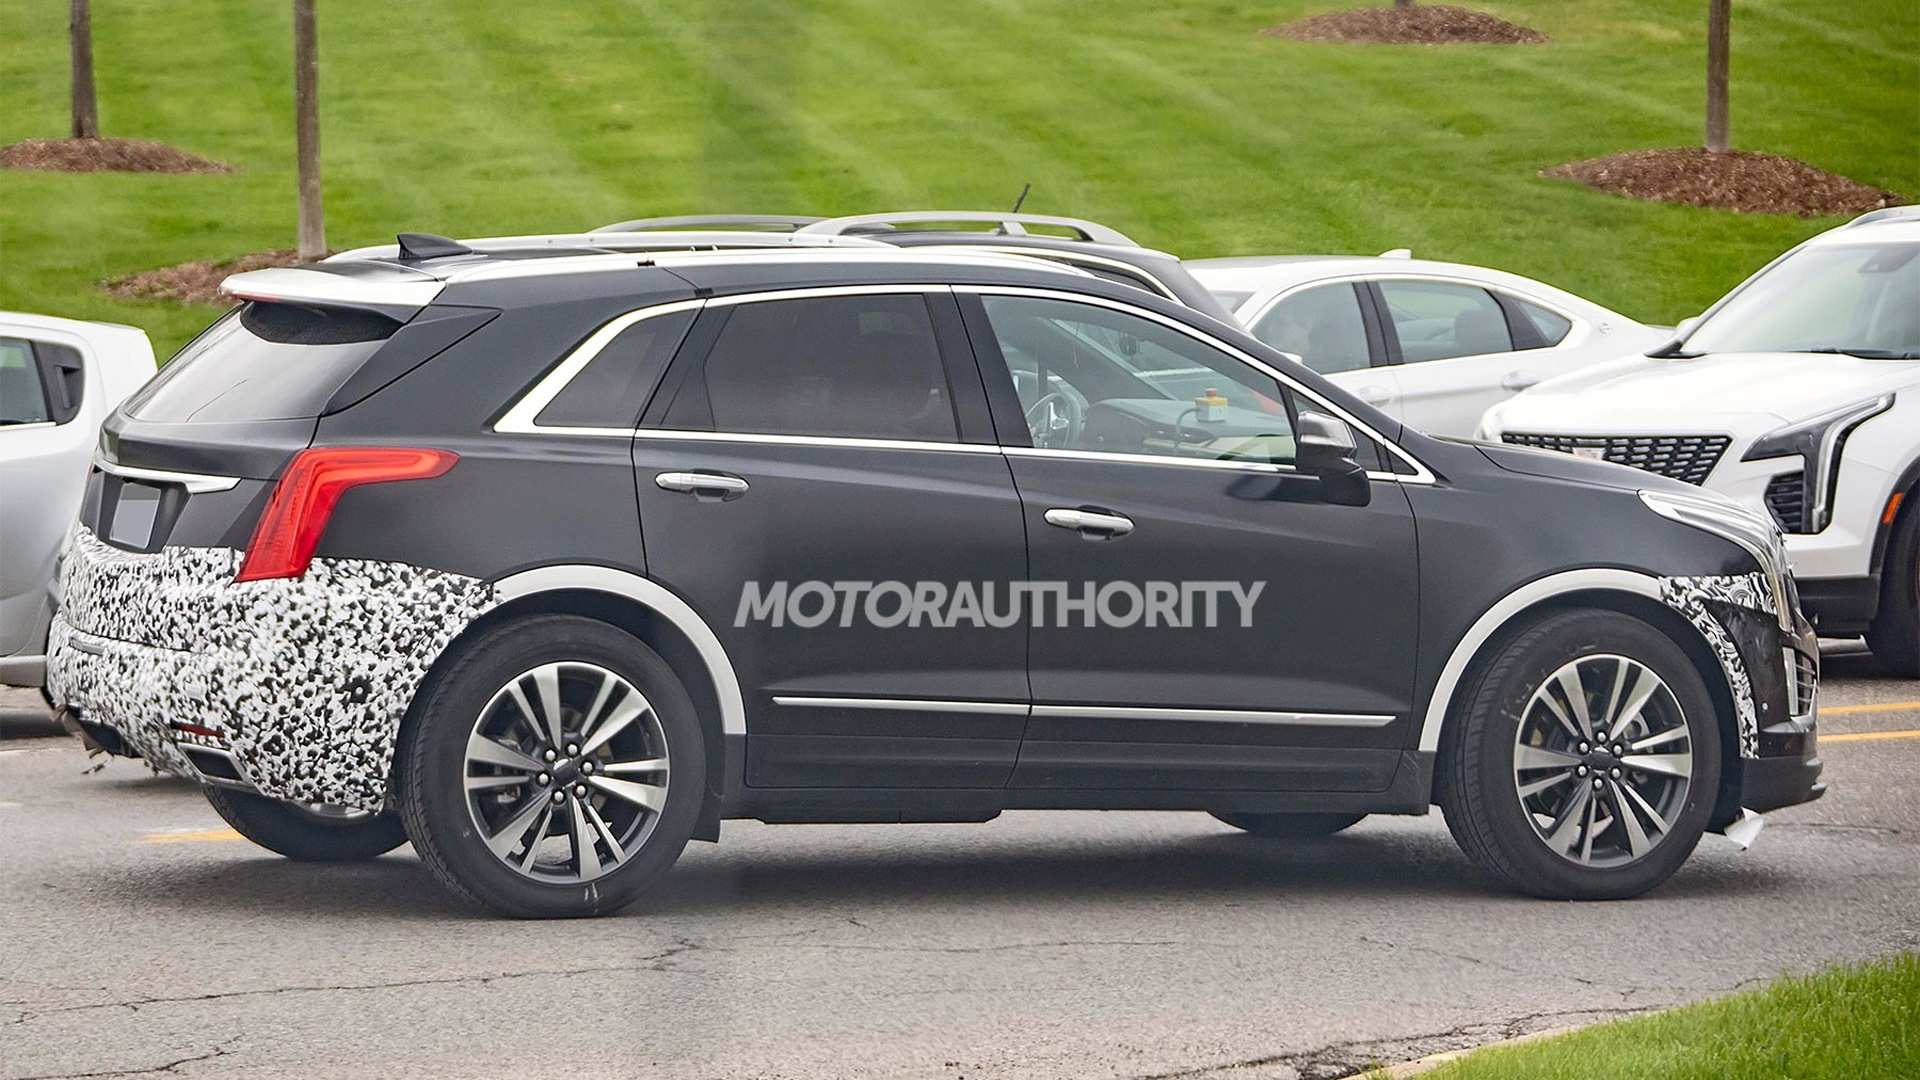 84 New Cadillac Hybrid Suv 2020 Specs And Review